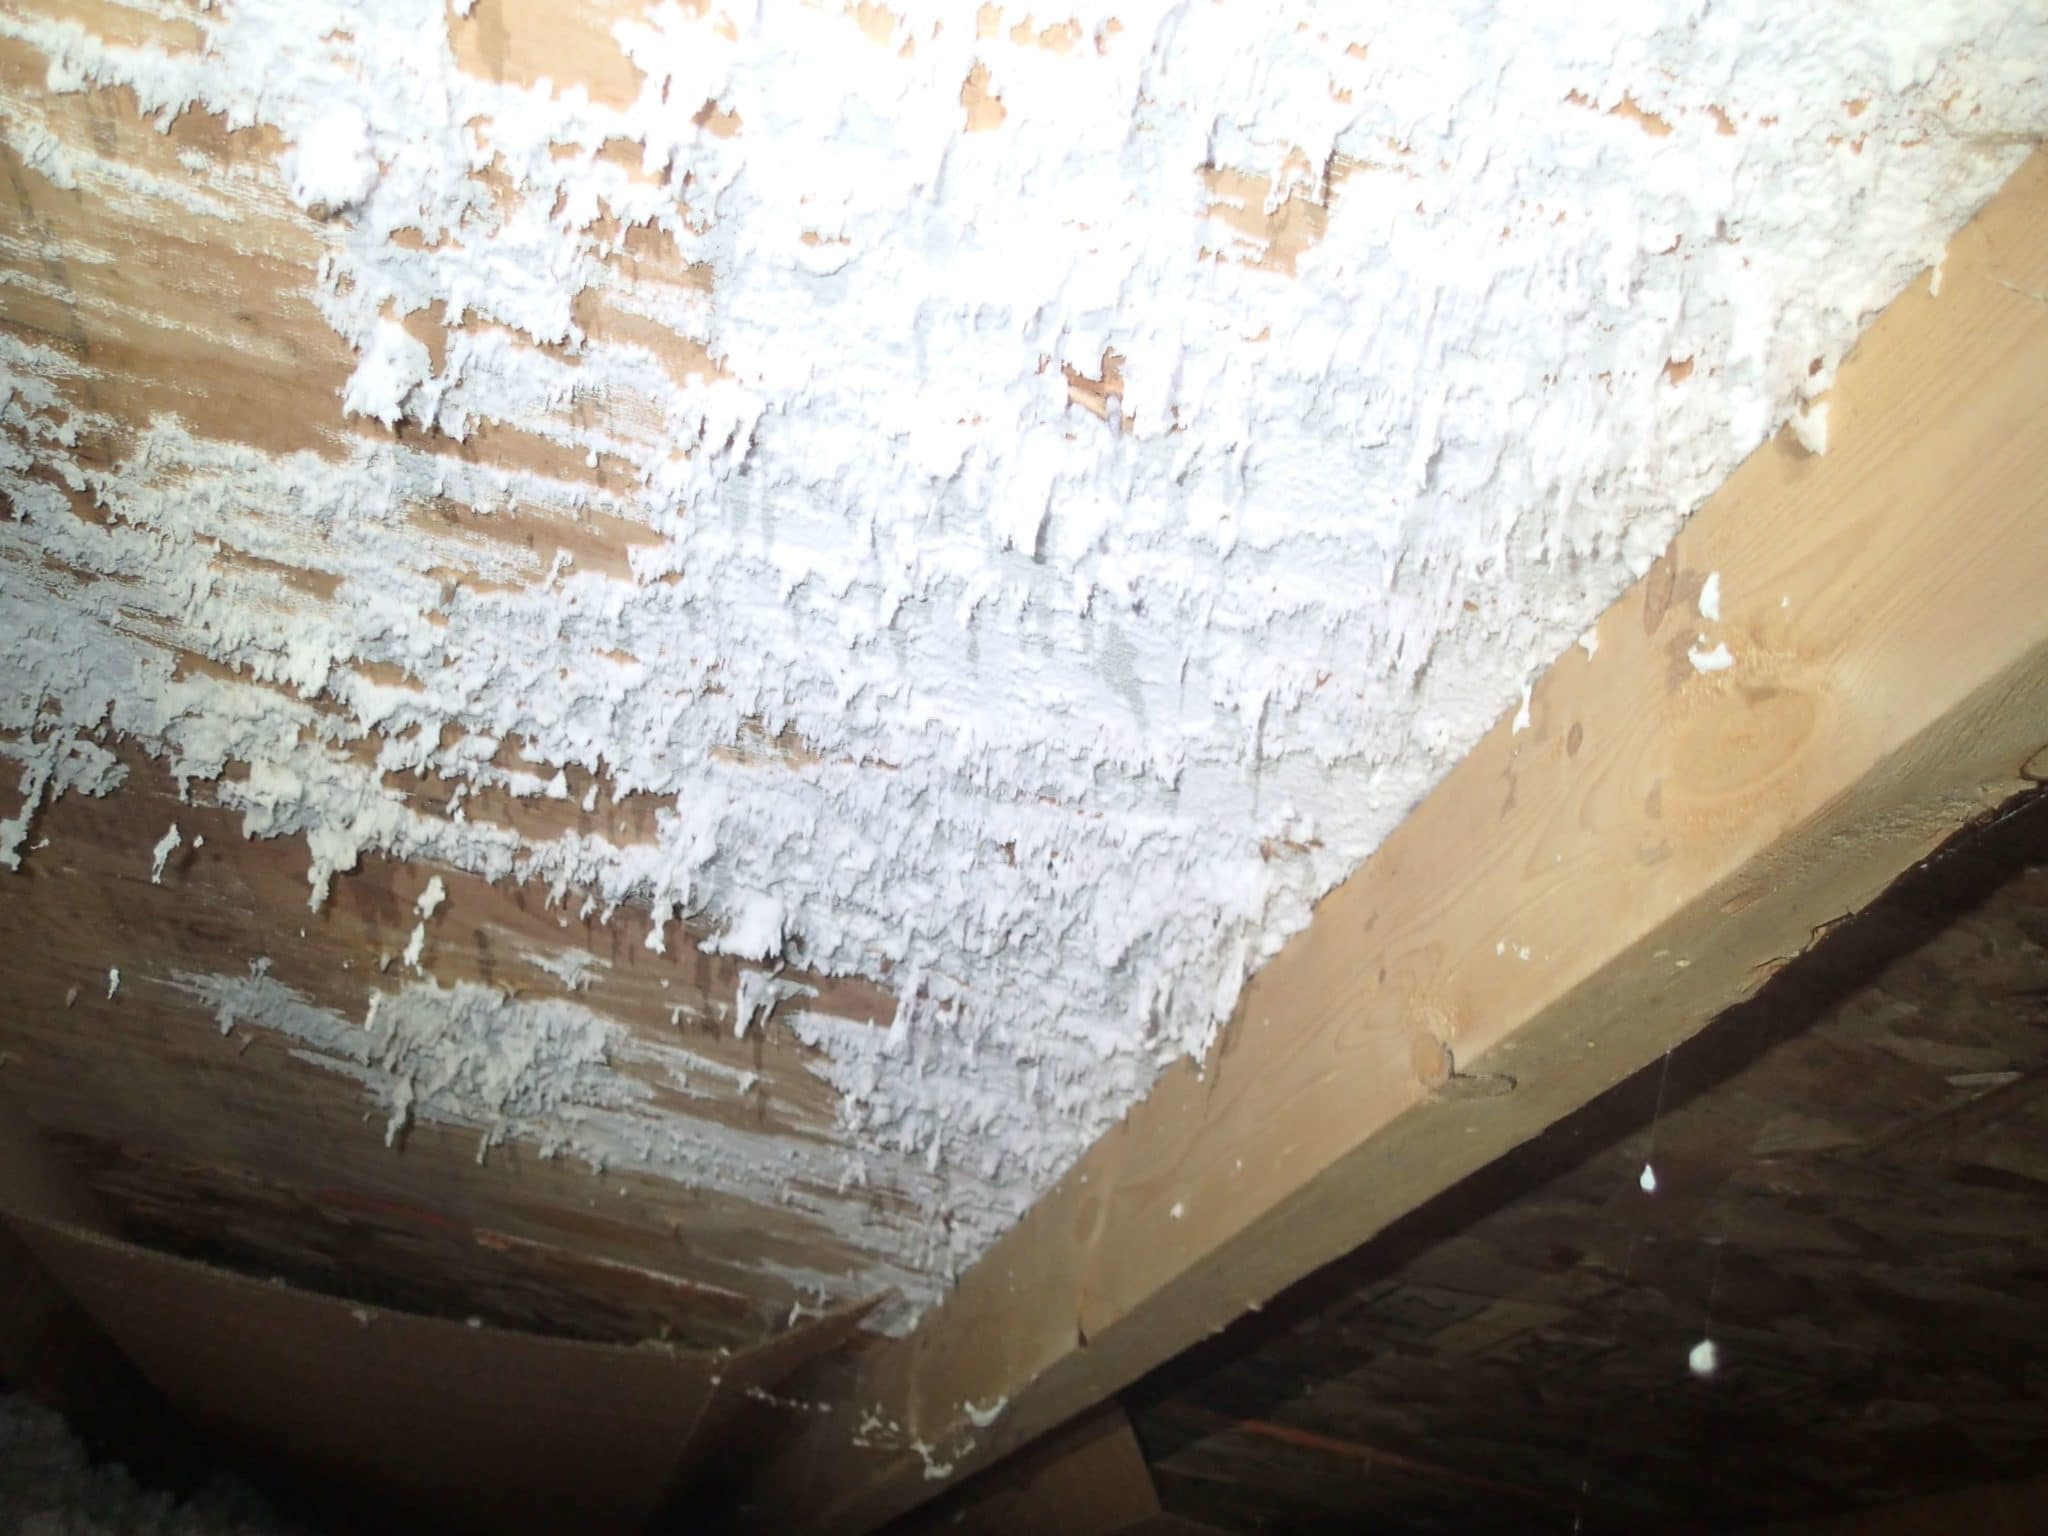 Radiant M Growth On Attic M On Attic Roof Sheathing Environix M On Wood Health Risks M On Wood Deck houzz-03 White Mold On Wood